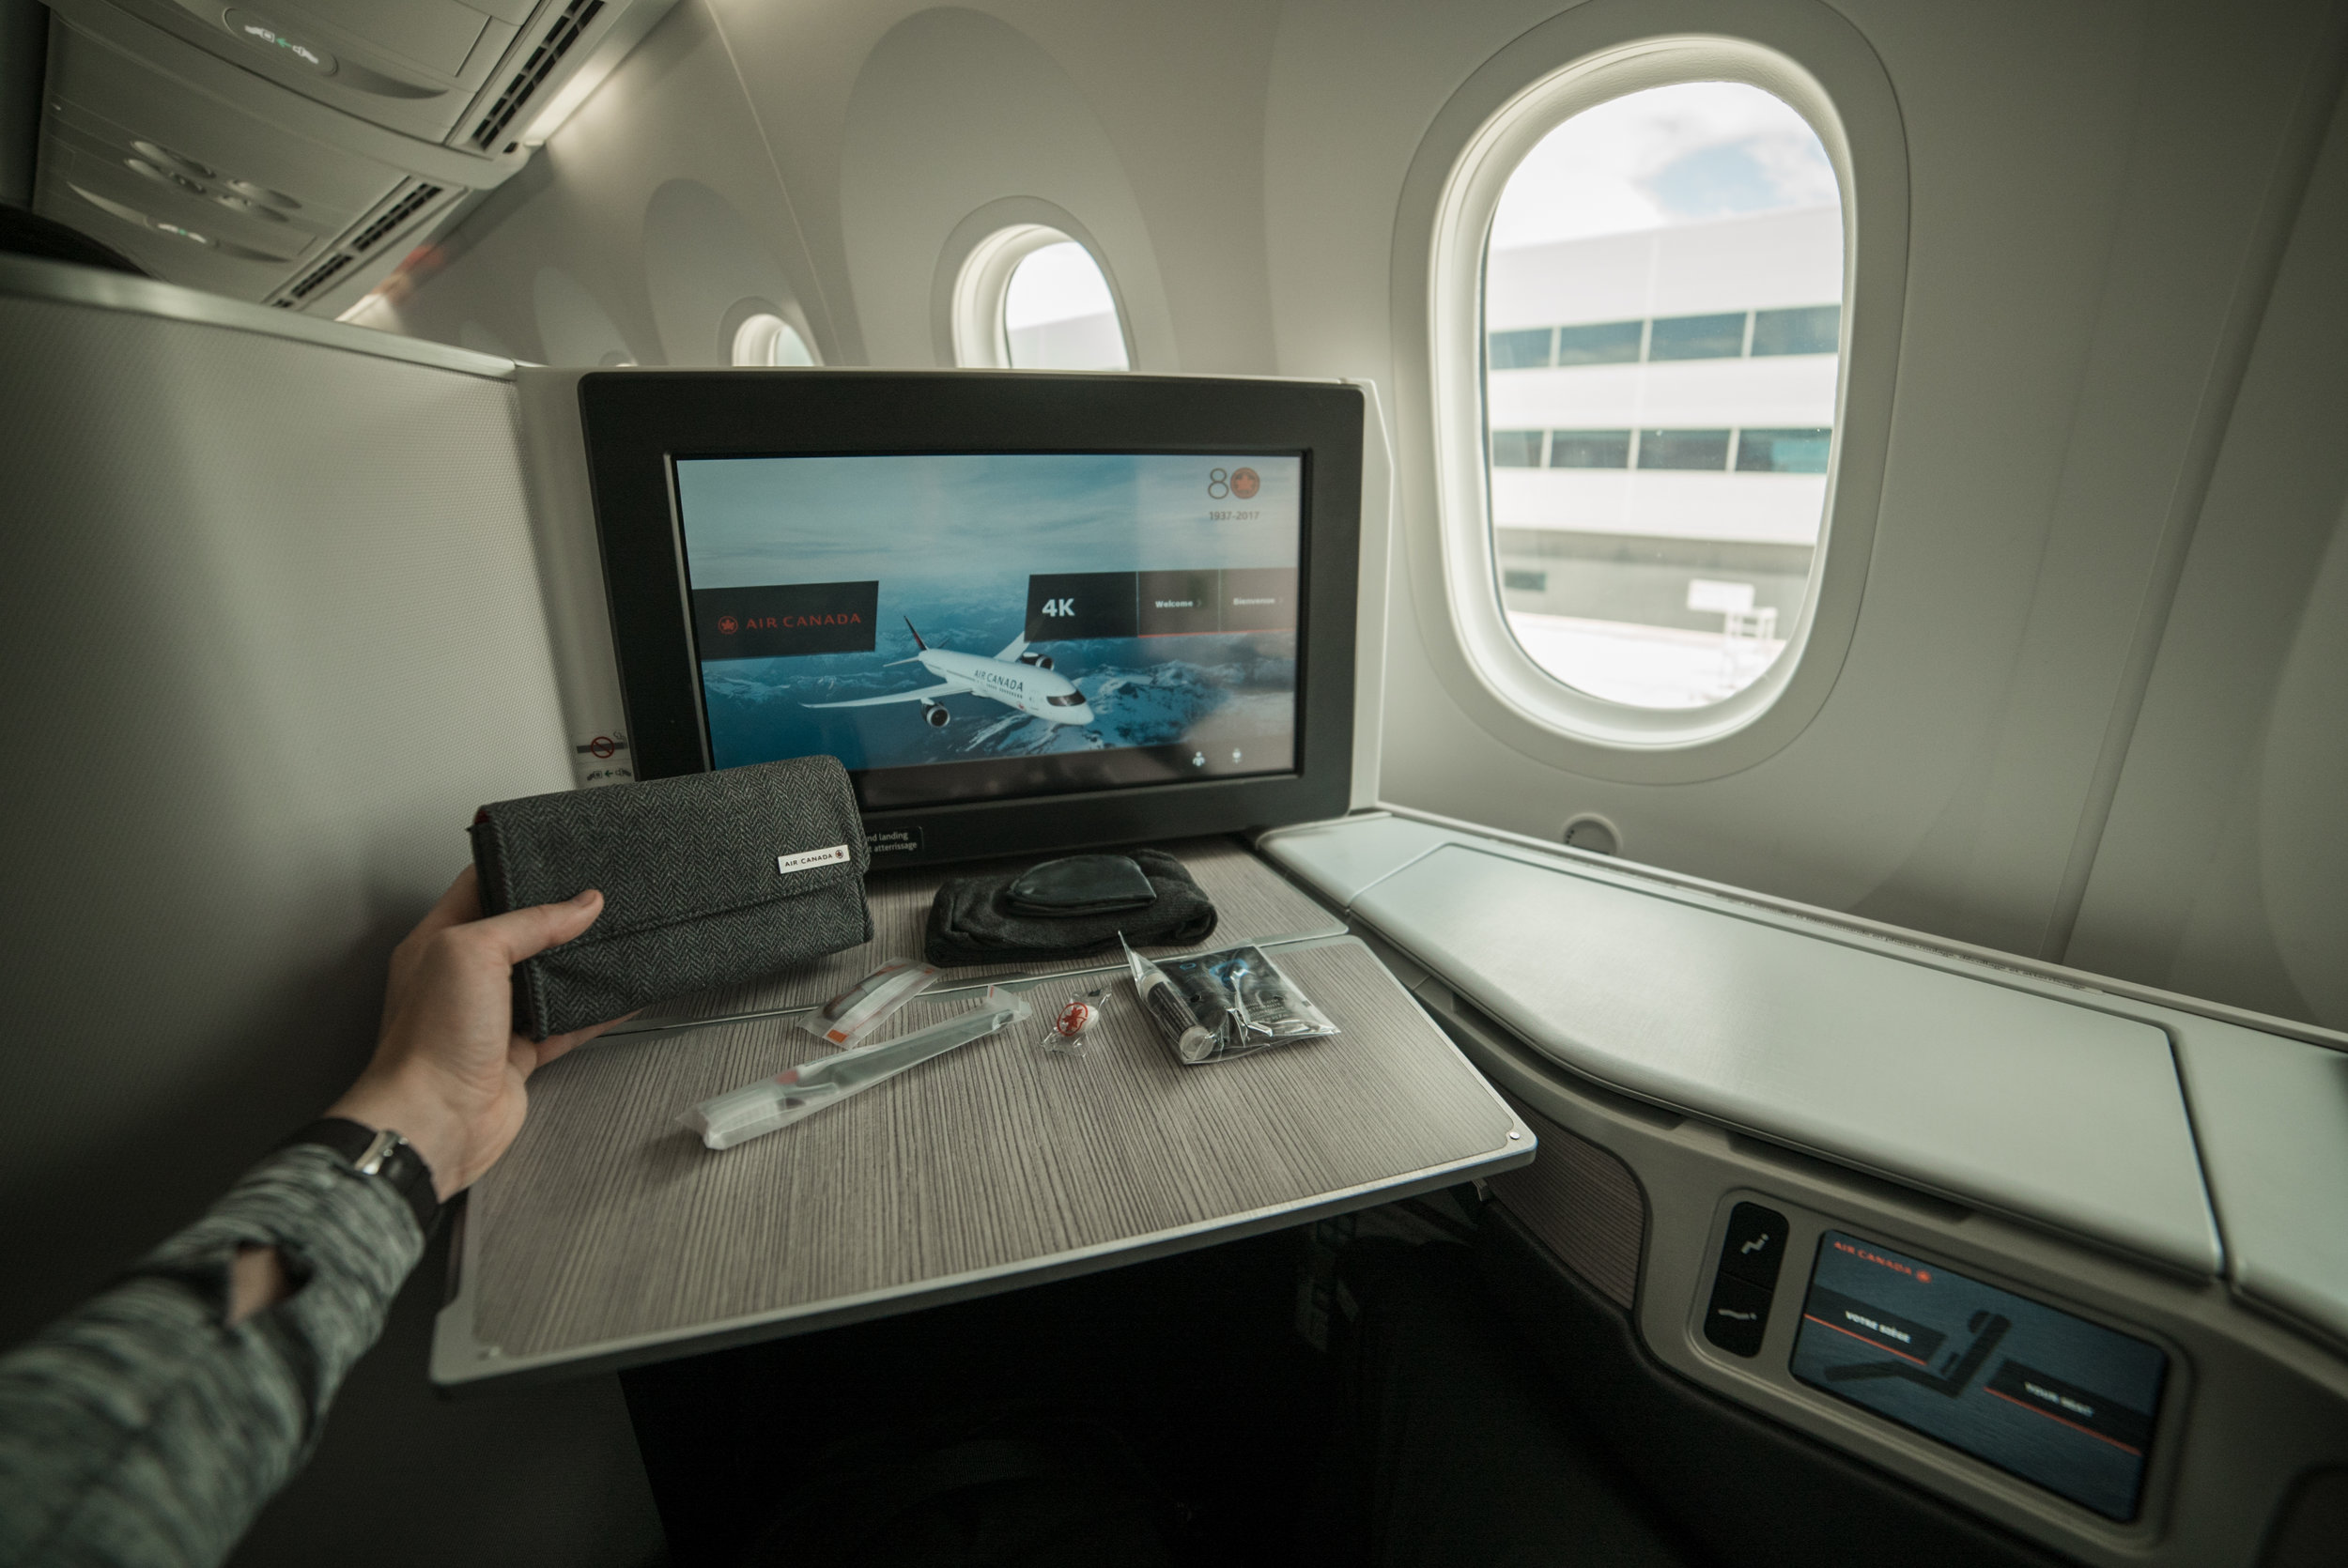 Flight Review - Read up on our incredible Air Canada Business Class experience onboard their new 787-9!